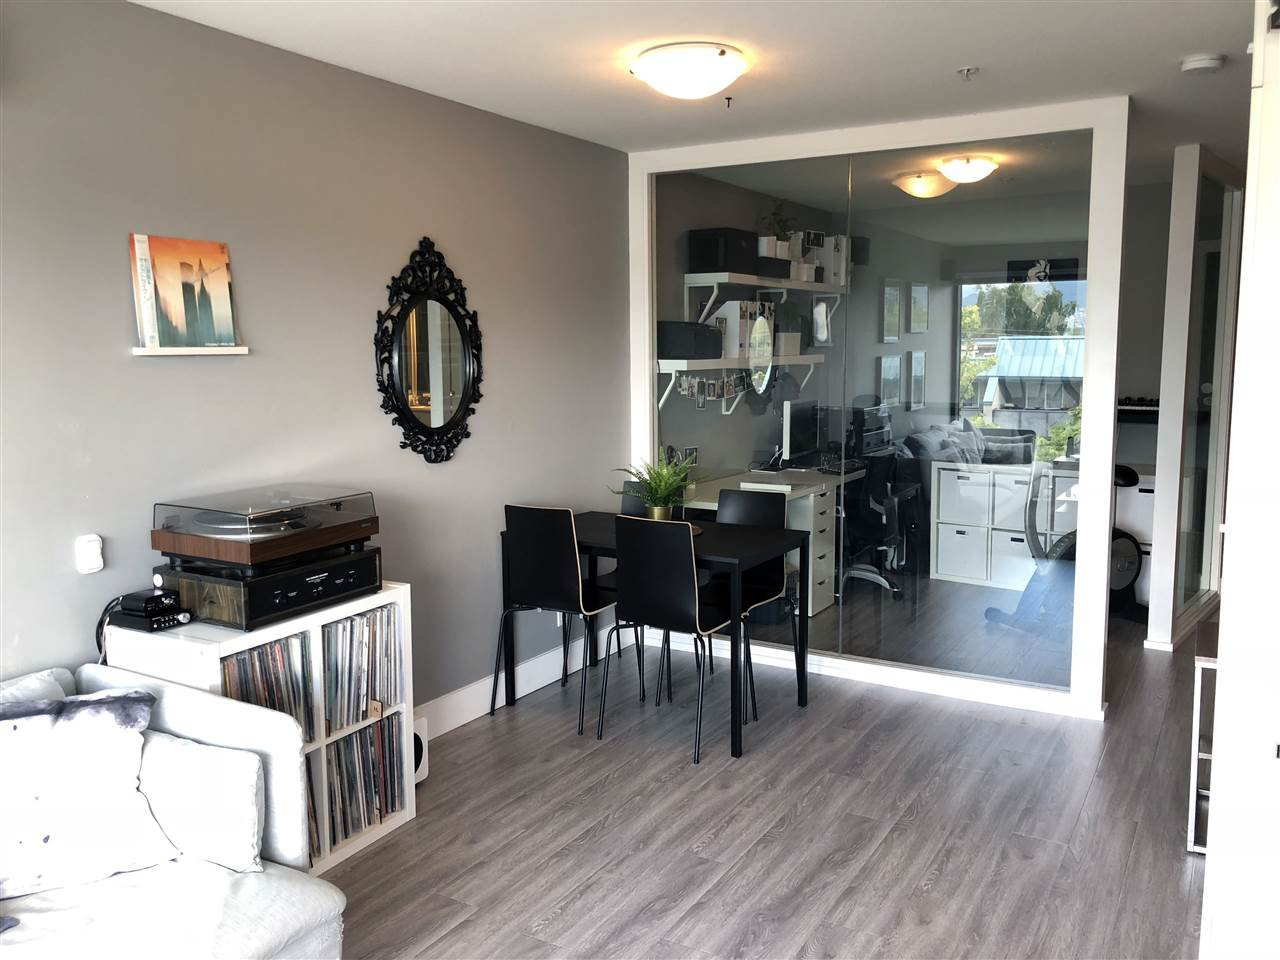 Photo 3: Photos: 404 2525 BLENHEIM Street in Vancouver: Kitsilano Condo for sale (Vancouver West)  : MLS®# R2278188